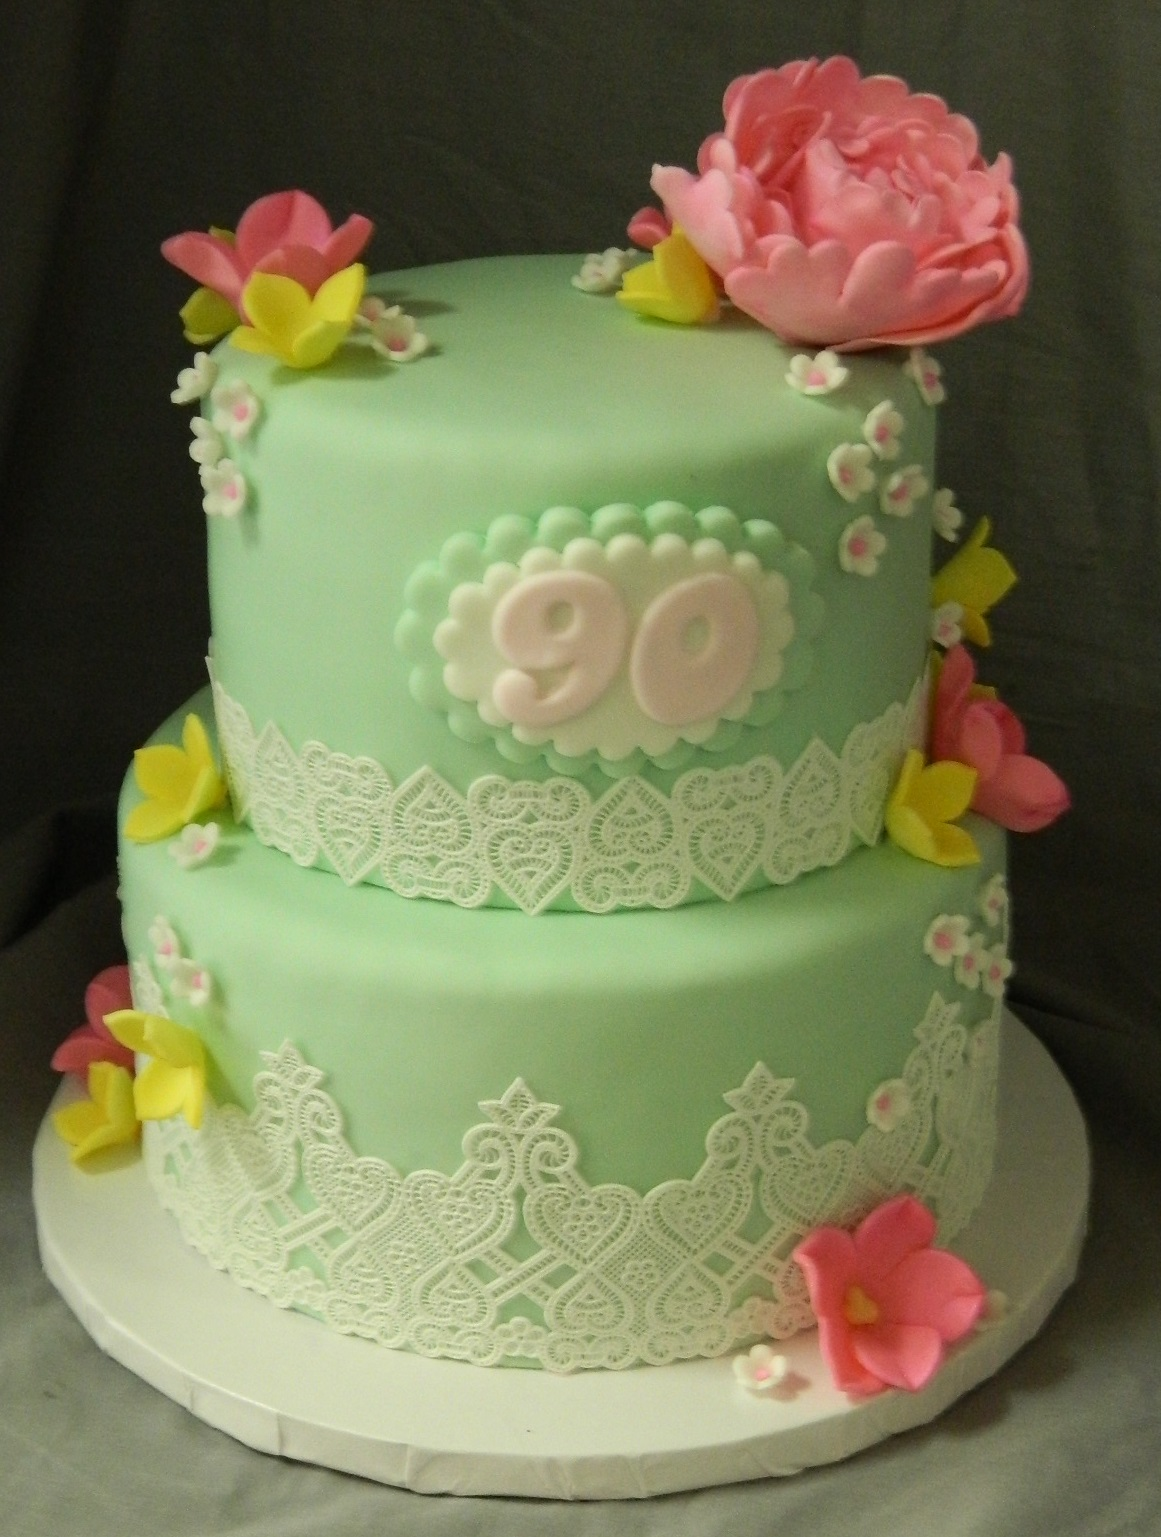 Flowers & Lace themed custom cake